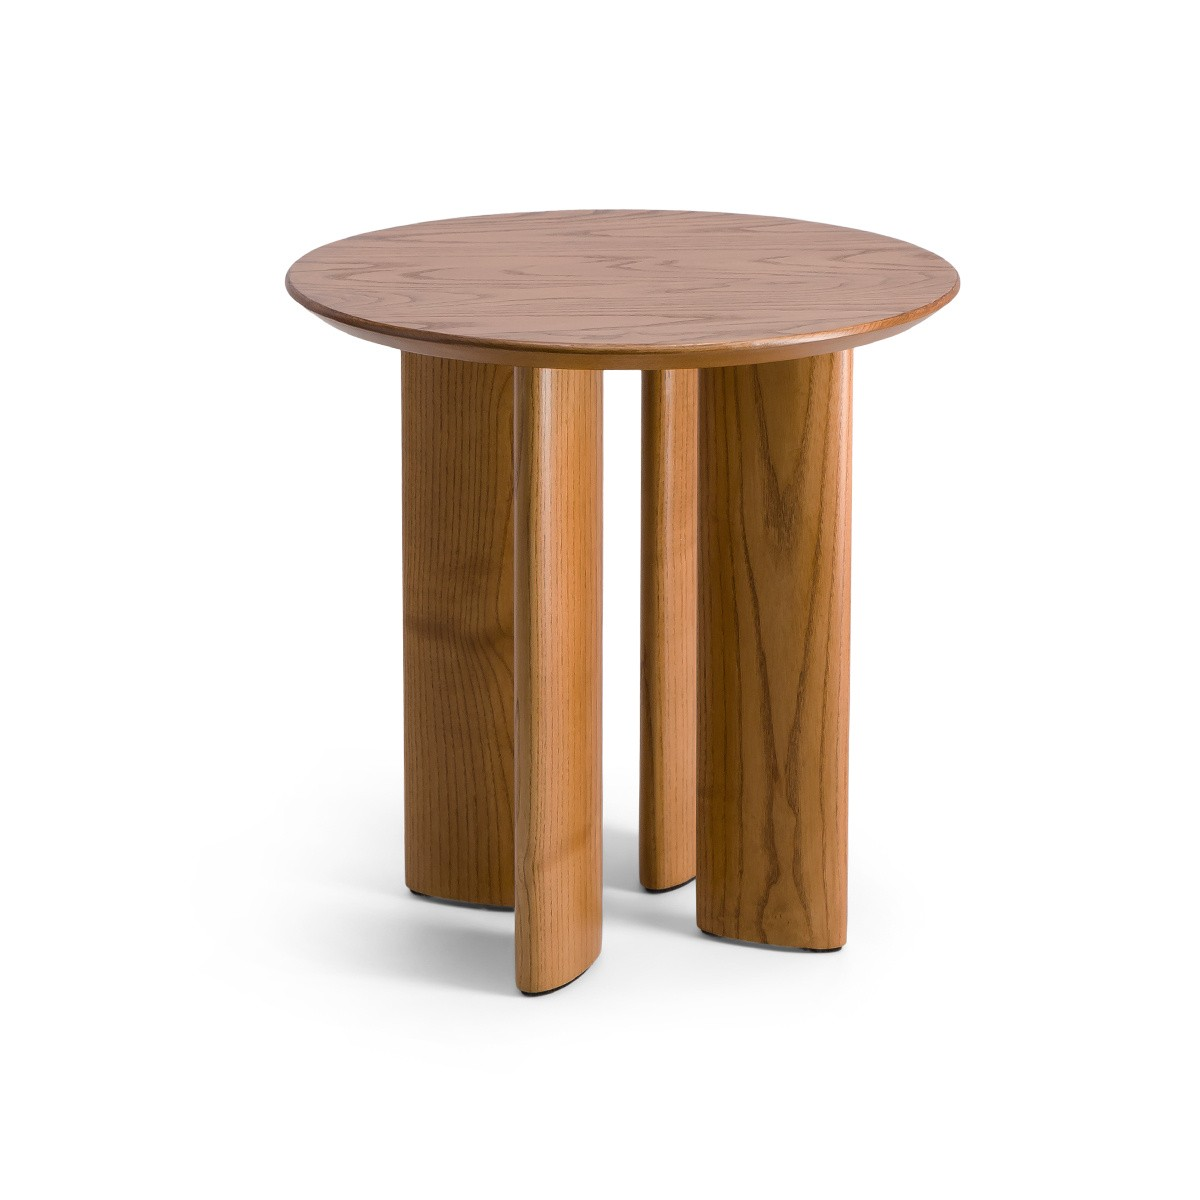 Table d'appoint Carlotta frêne finition iroko